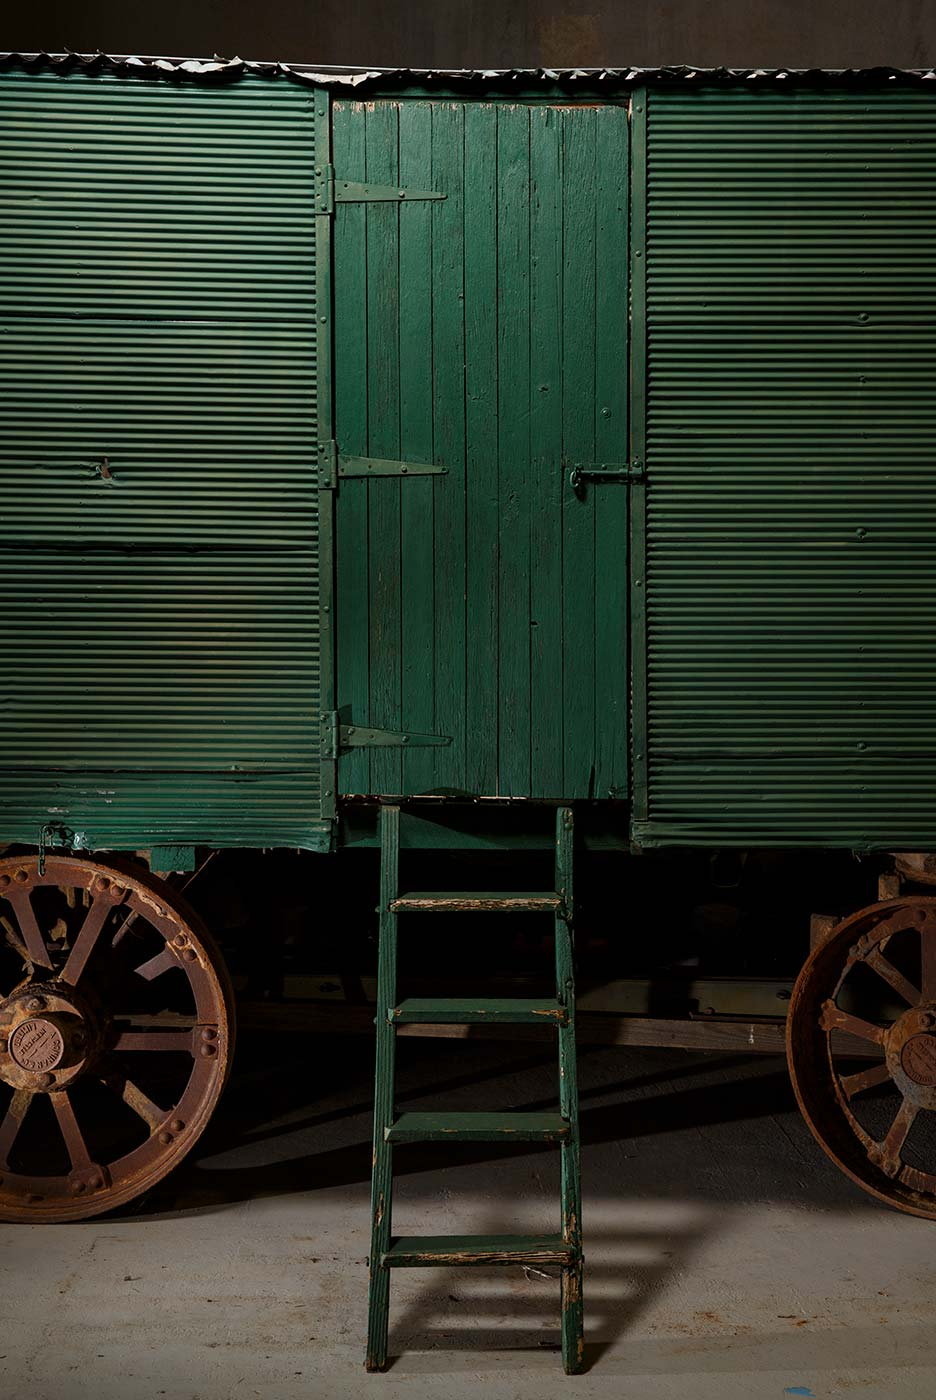 A cook's galley in the form of a metal-clad, timber and iron-framed box raised on wagon wheels. This view is of one of the galley's side doors closed. - click to view larger image